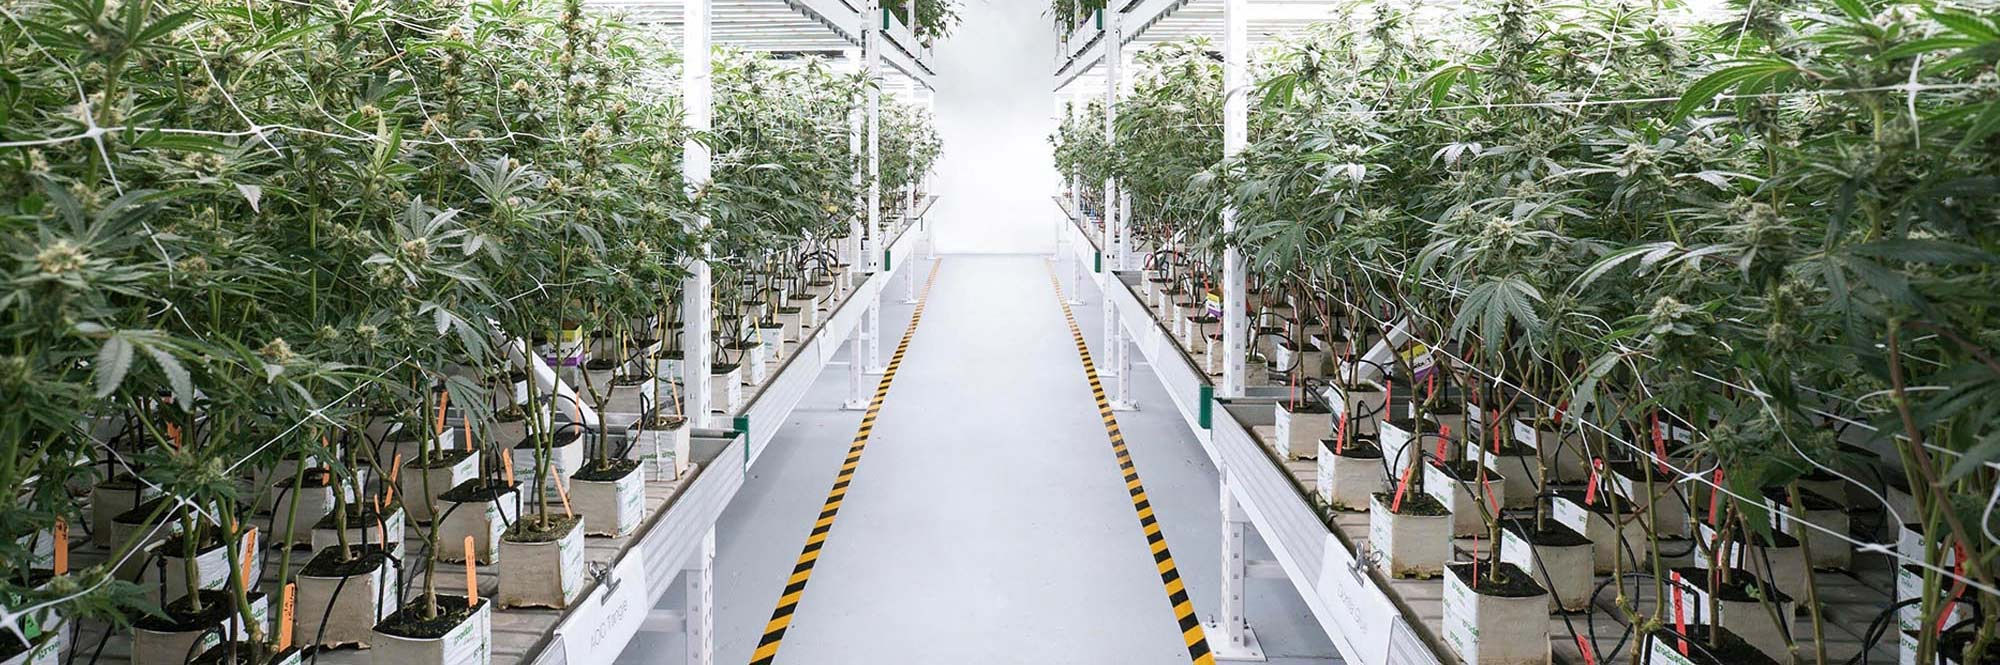 Cannabis Growing wholesale